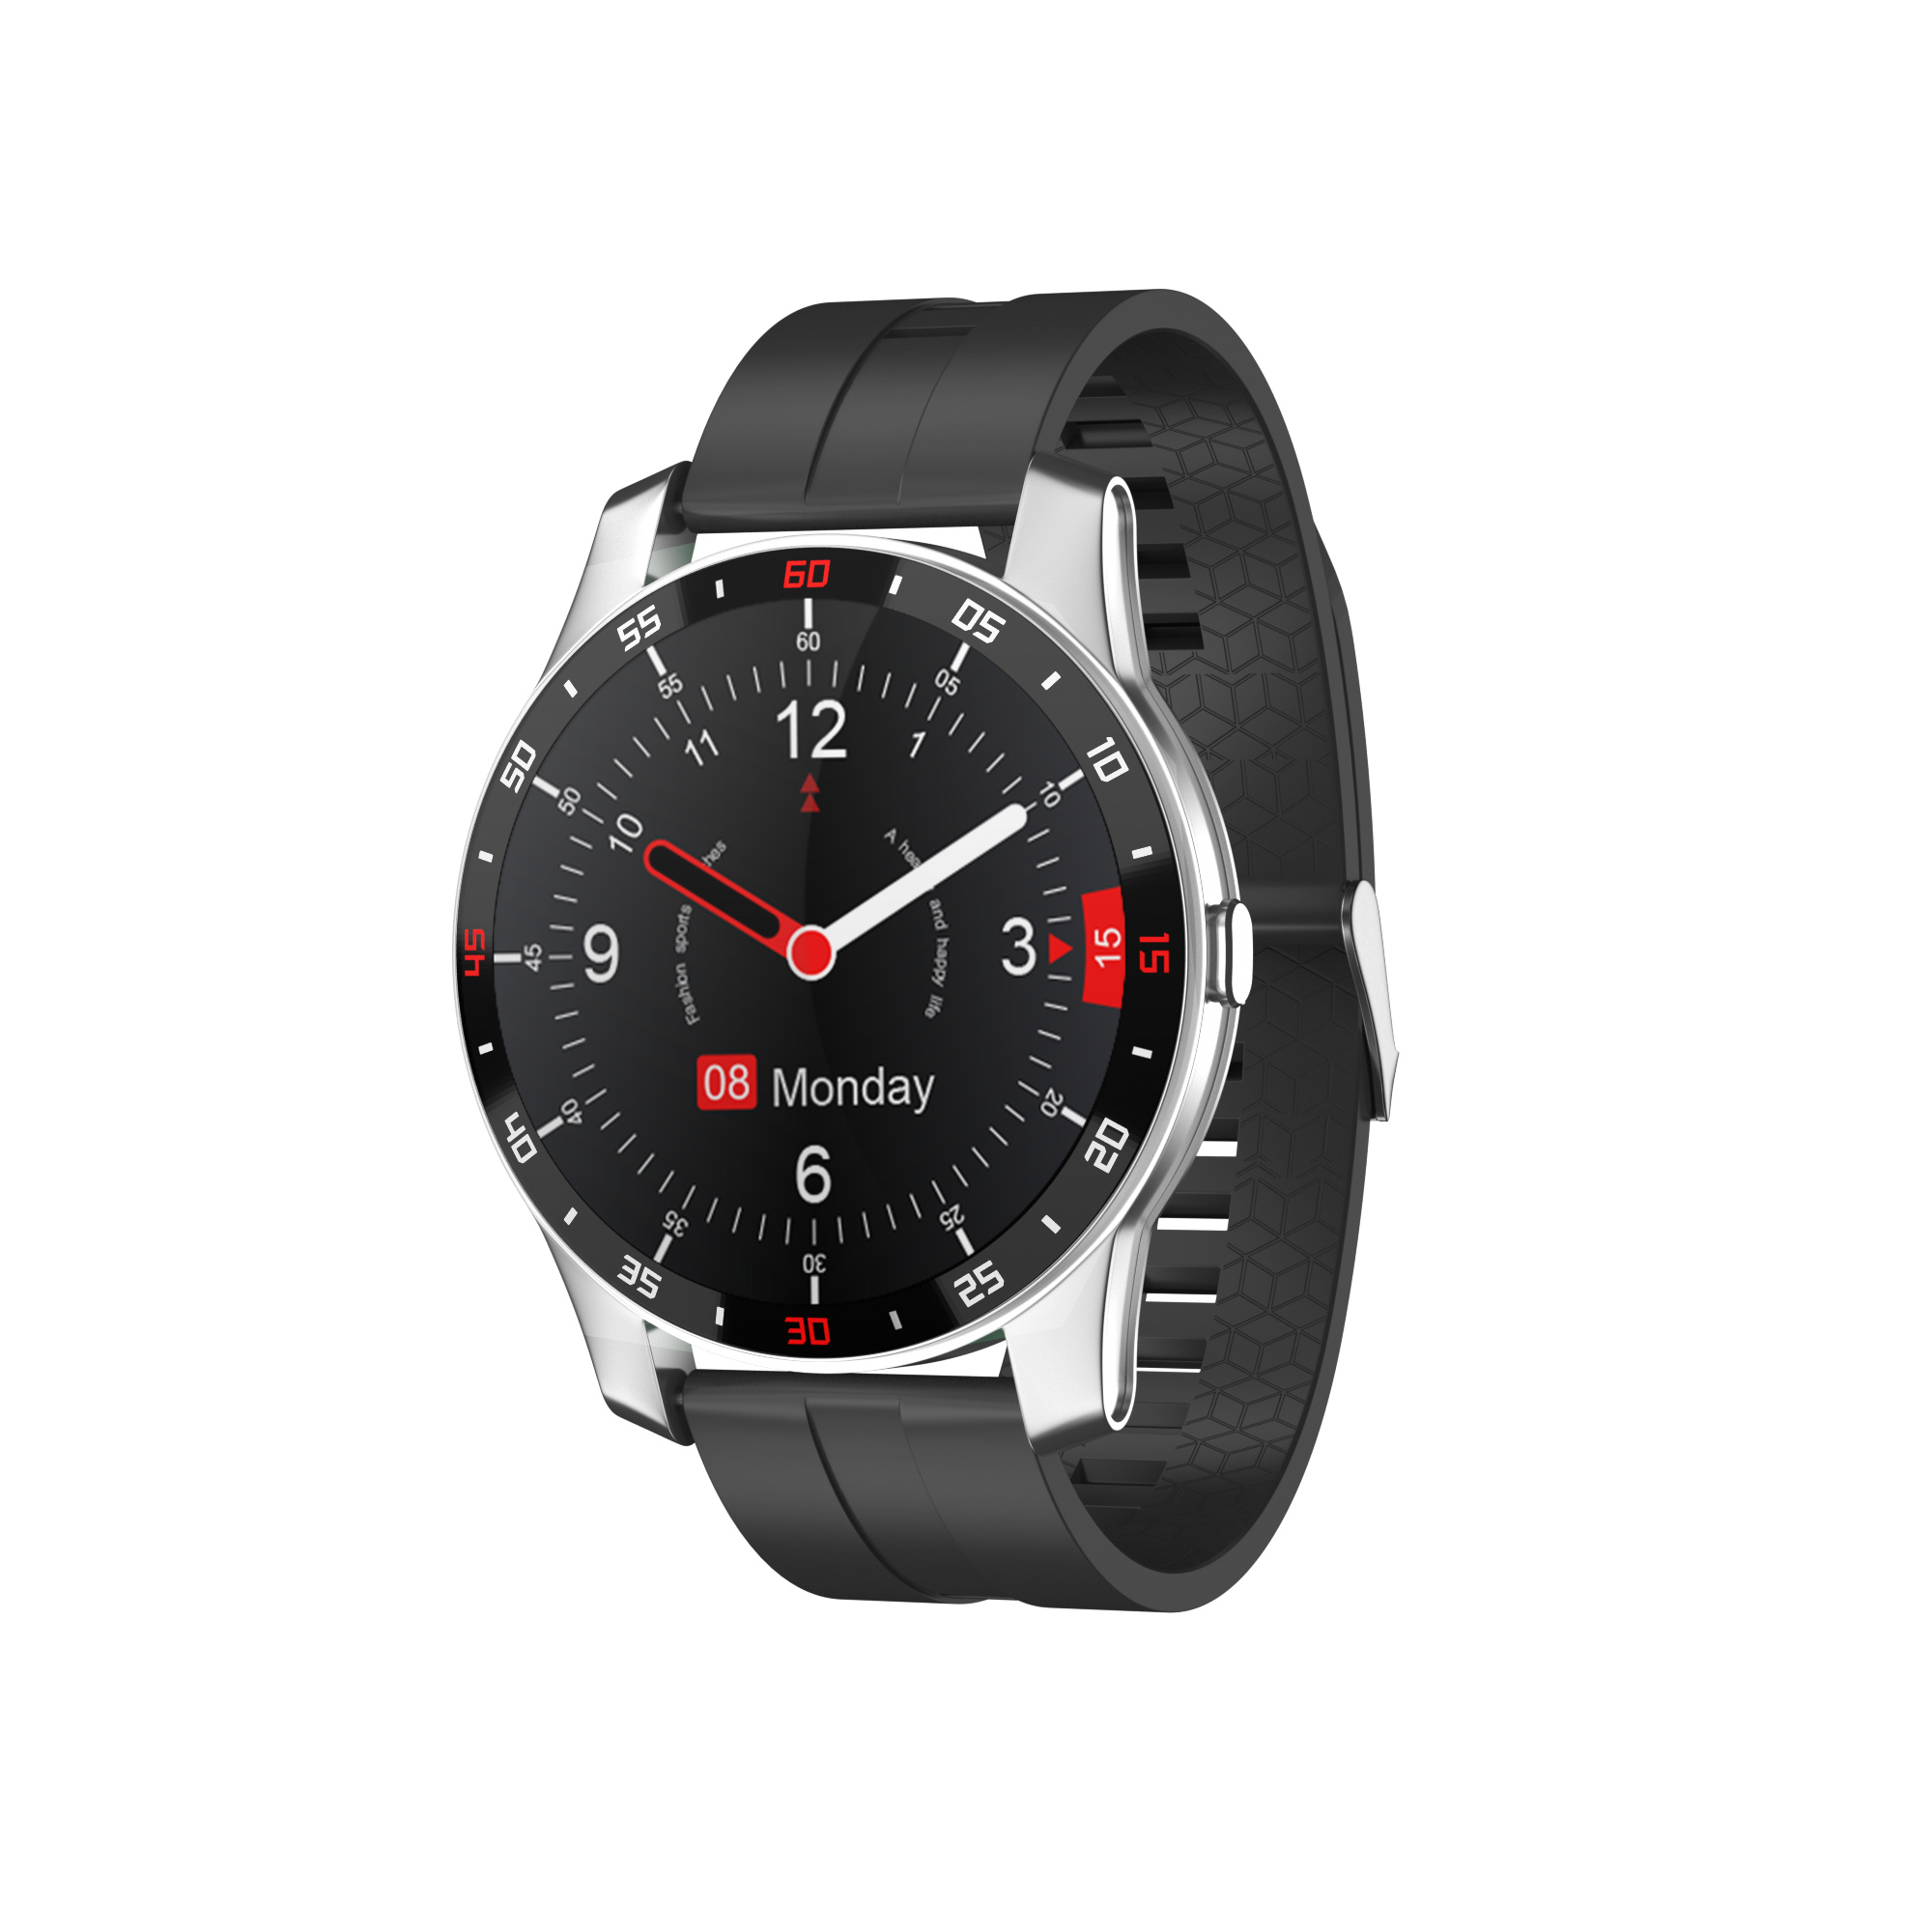 F12 Pro Bluetooth 5.0 Sports Smartwatches Color Display 280mah 24h Real Time Heart Tate Monitoring Smartwatch black